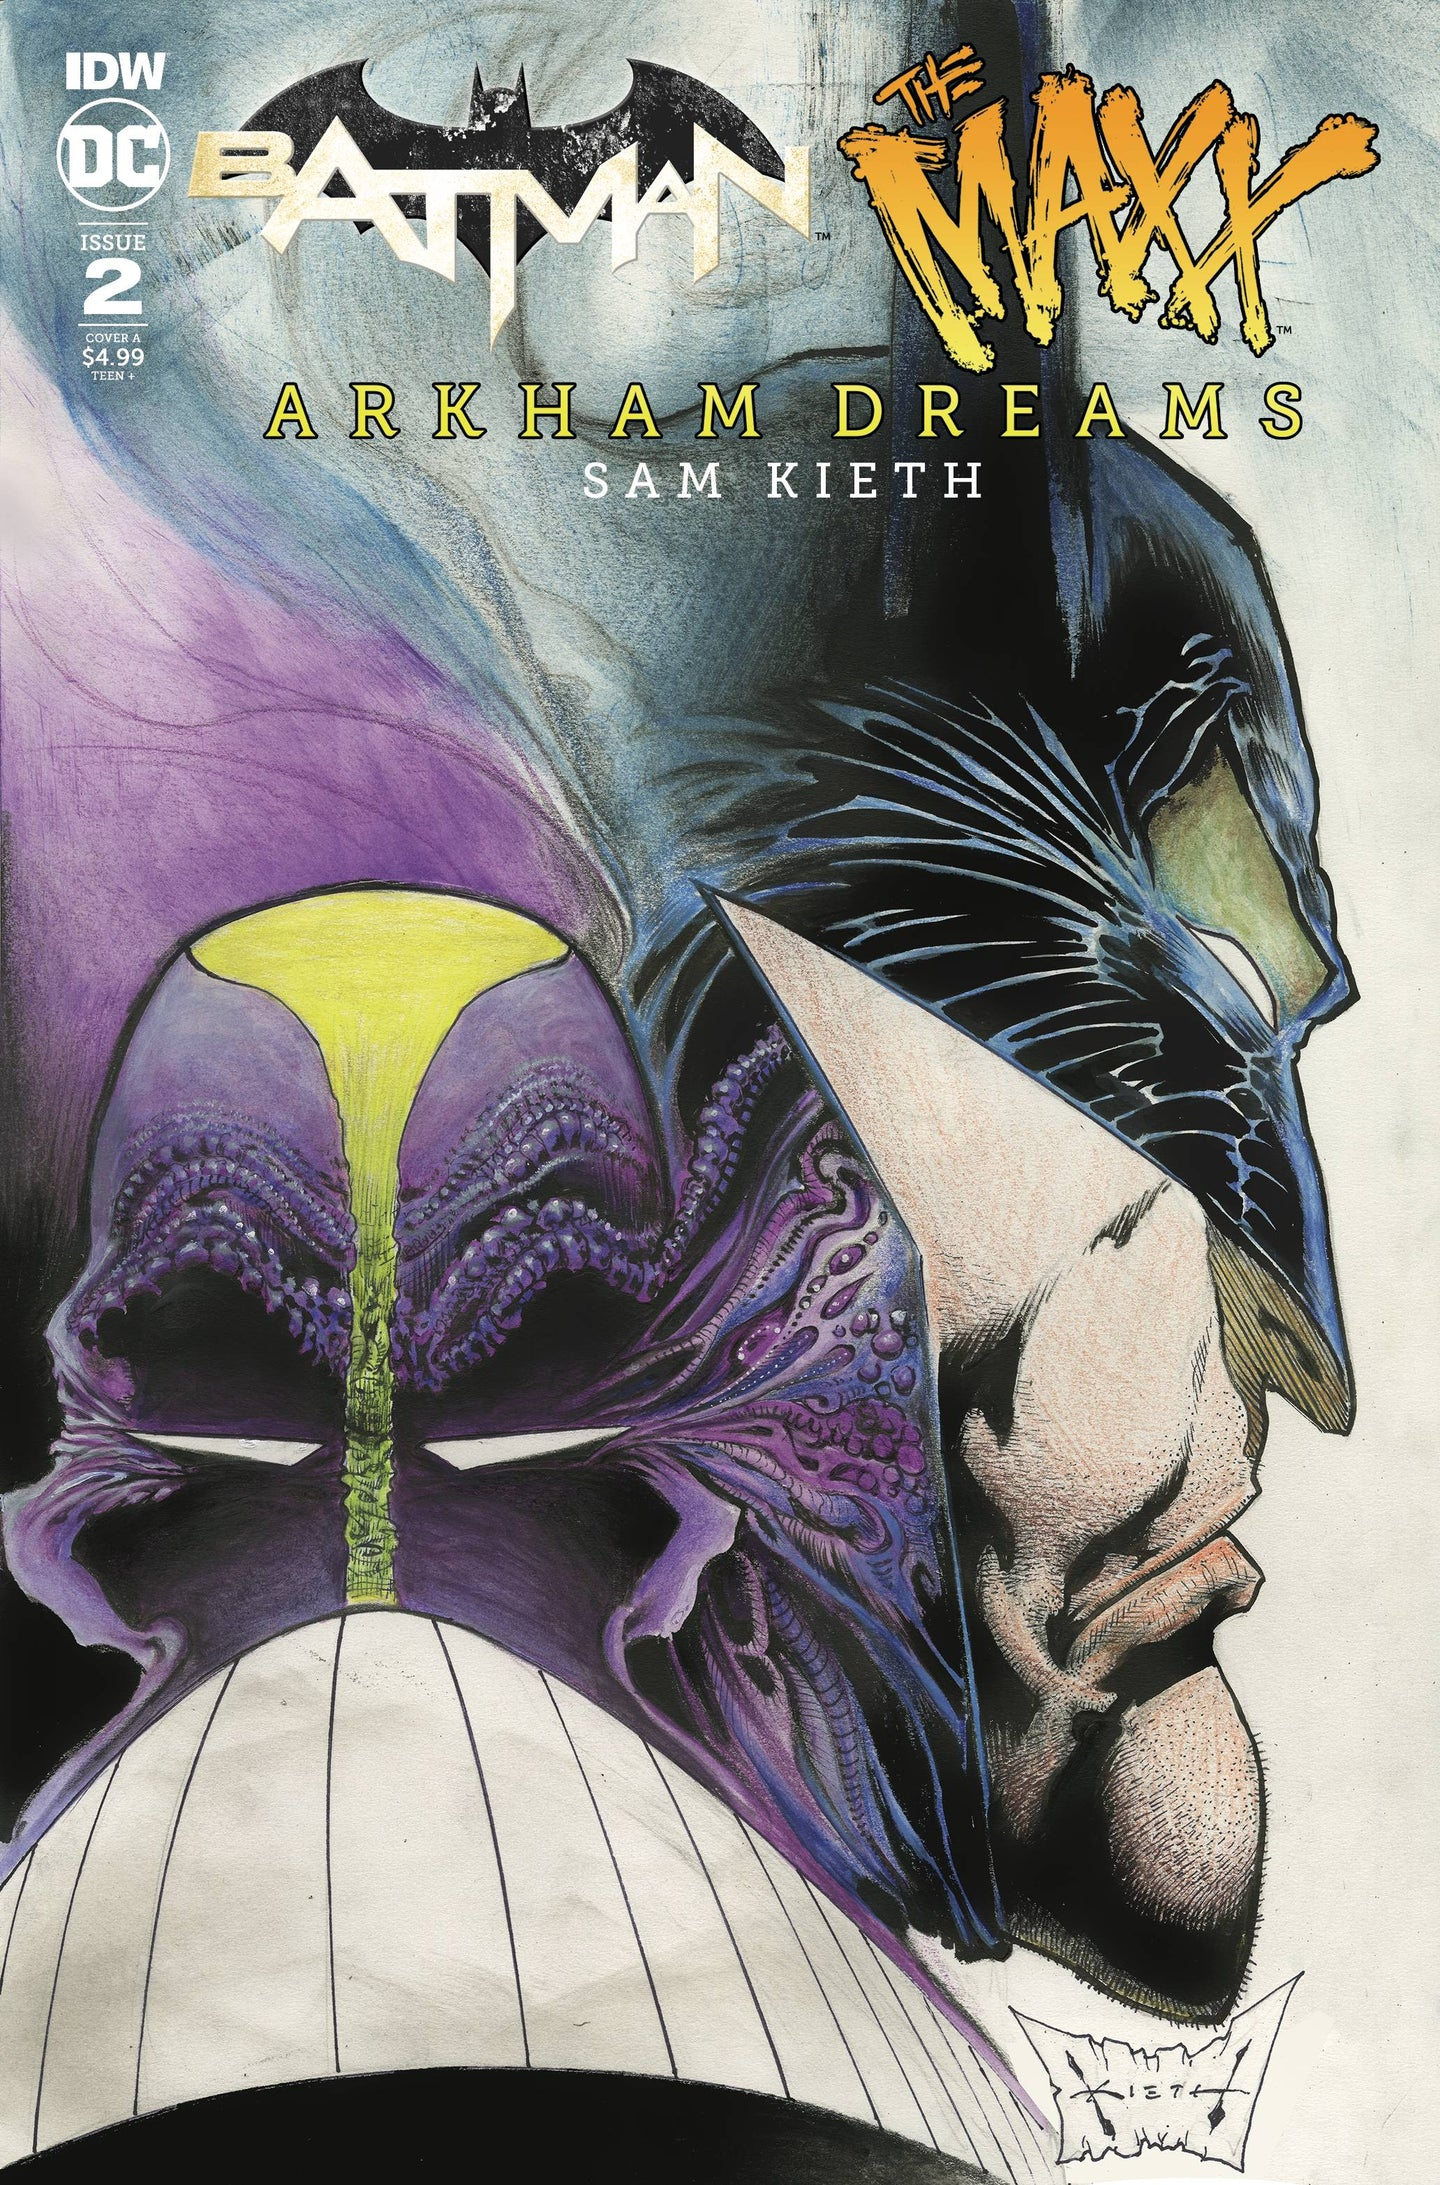 BATMAN THE MAXX ARKHAM DREAMS #2 (OF 5) CVR A KIETH